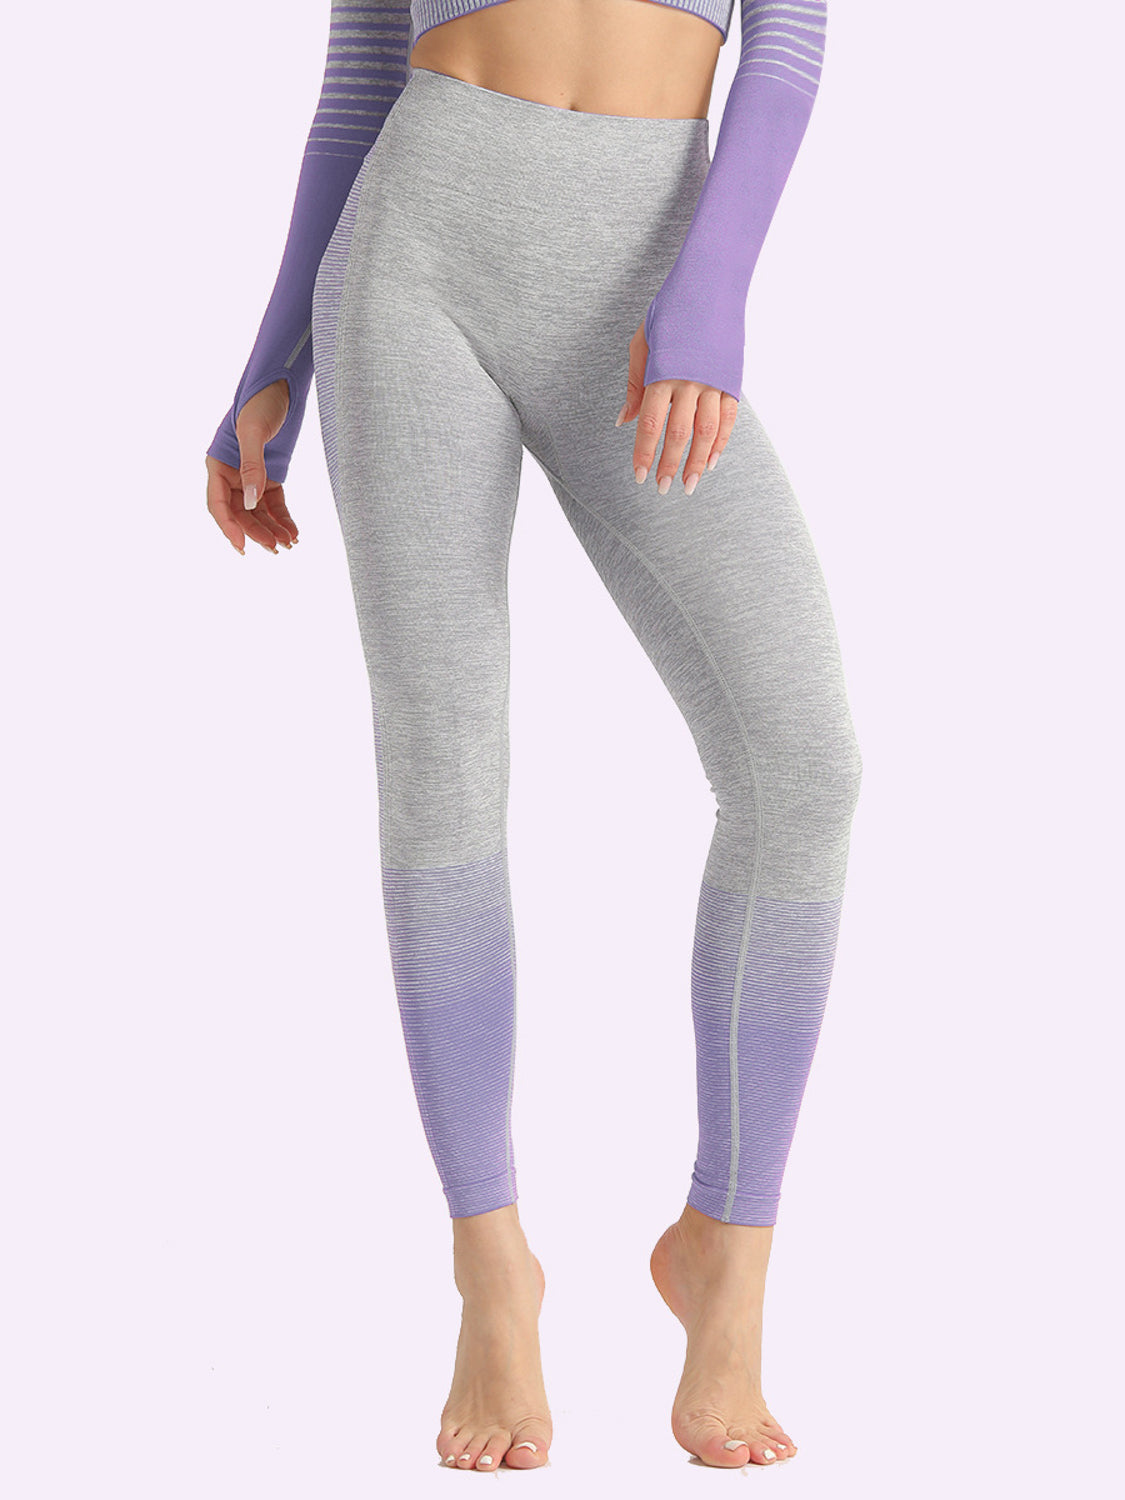 MOVI Rise Full Length Leggings - Grey/Purple